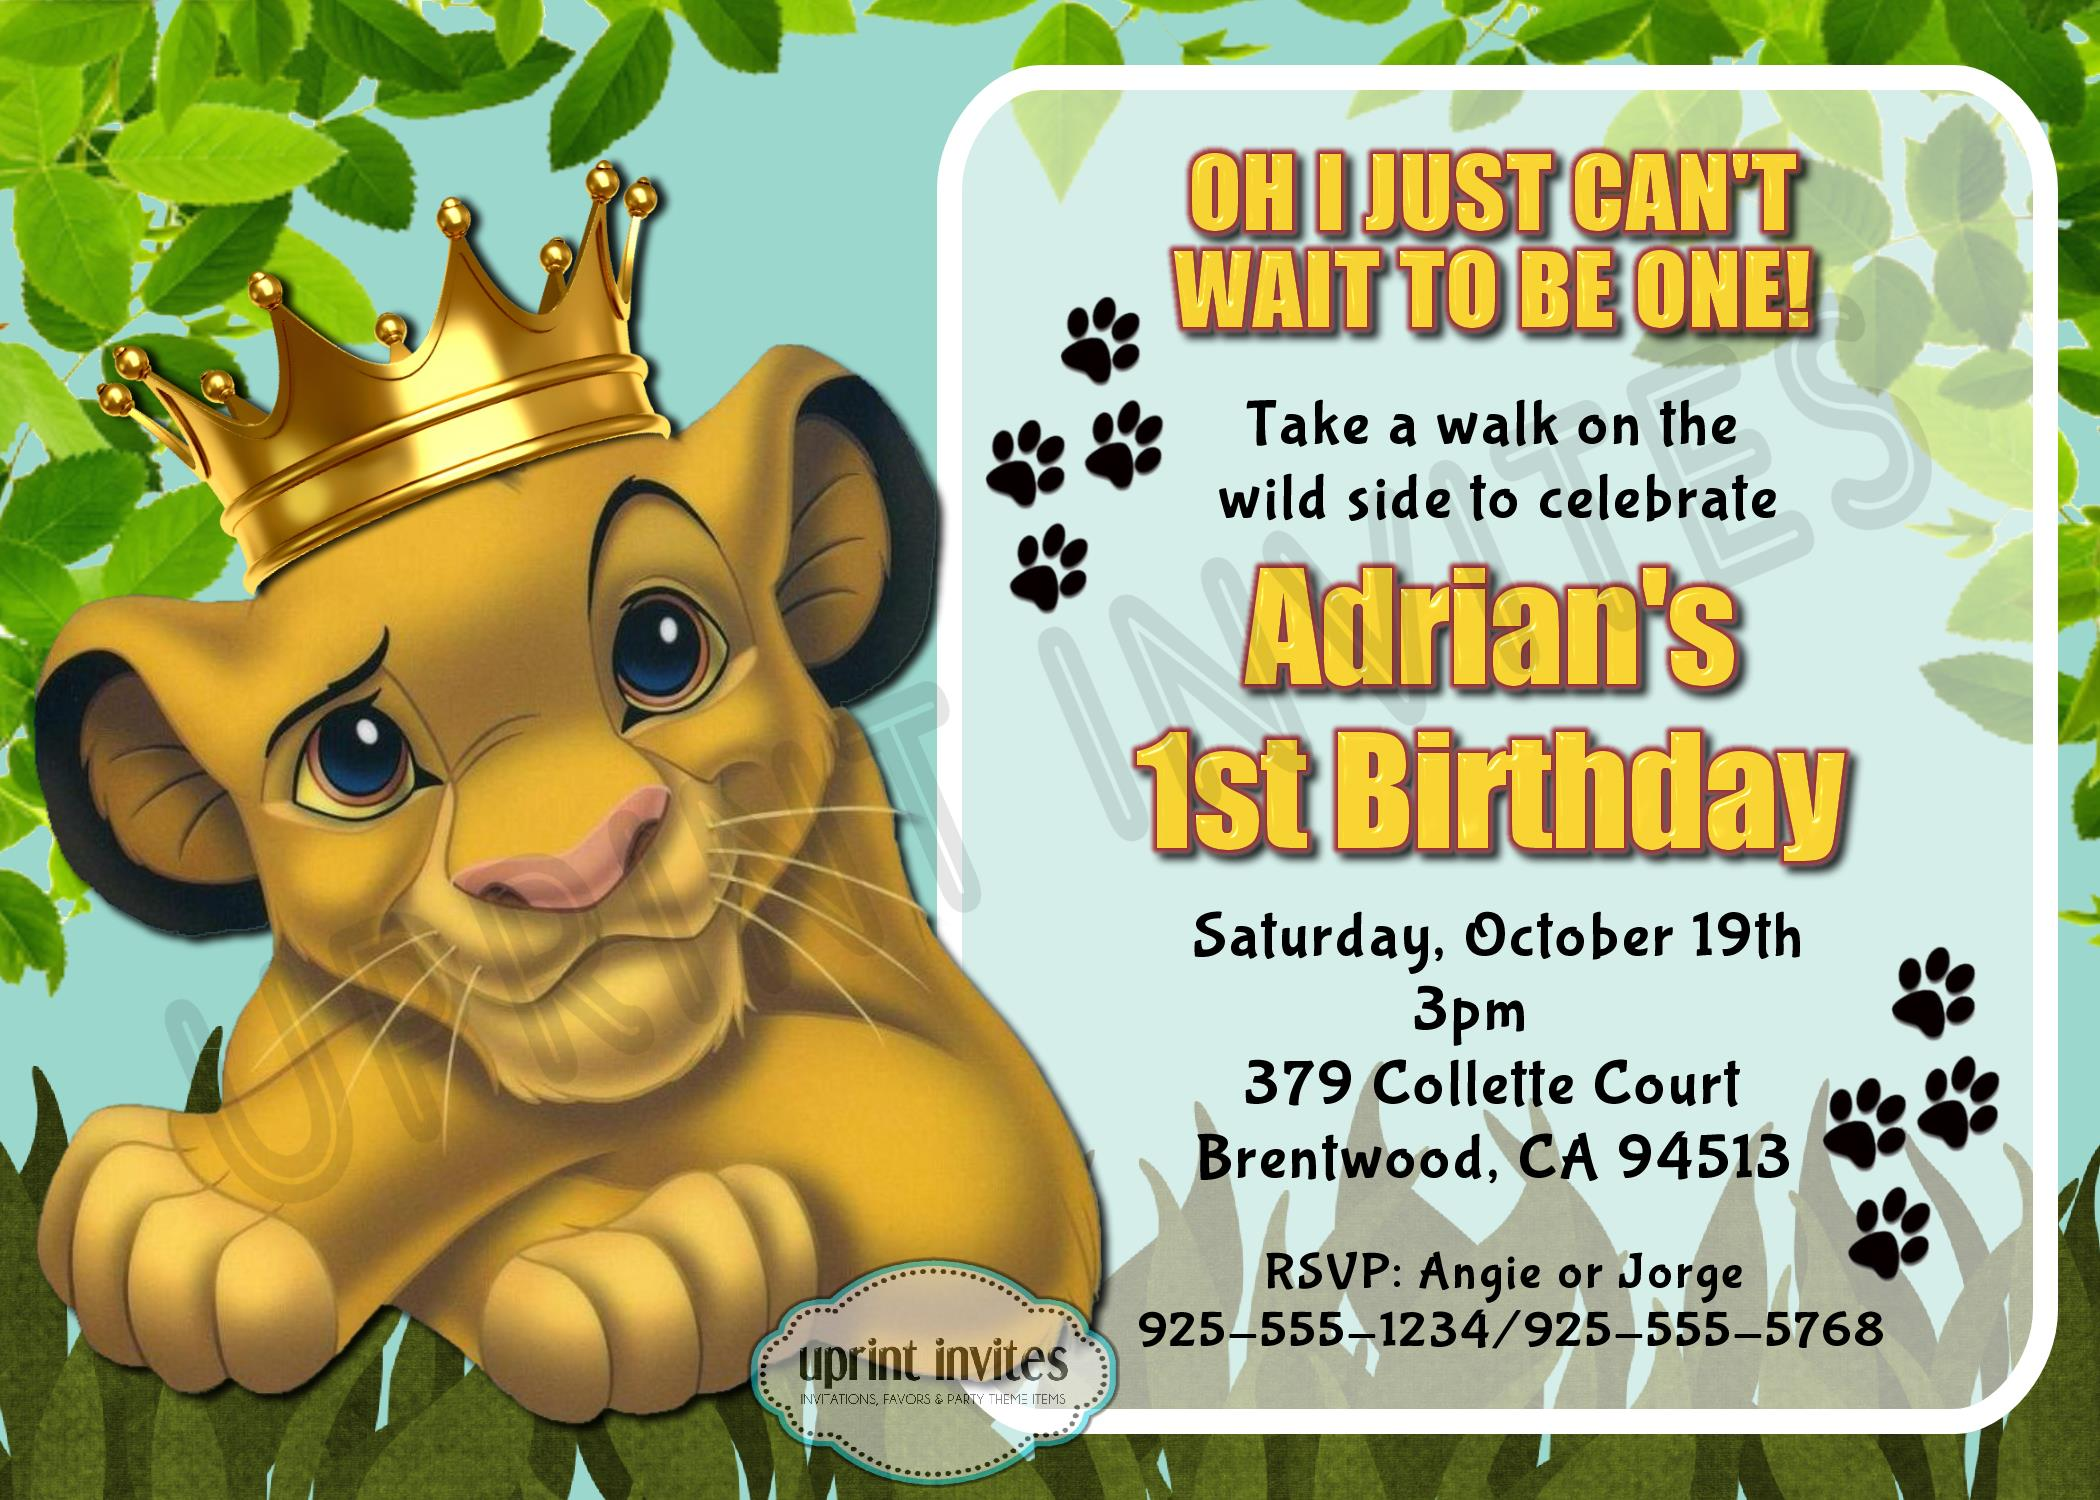 lion king birthday invitation template free ; lion-king-birthday-invitations-with-pretty-Birthday-Invitation-Templates-as-a-result-of-an-application-using-a-felicitous-concept-1